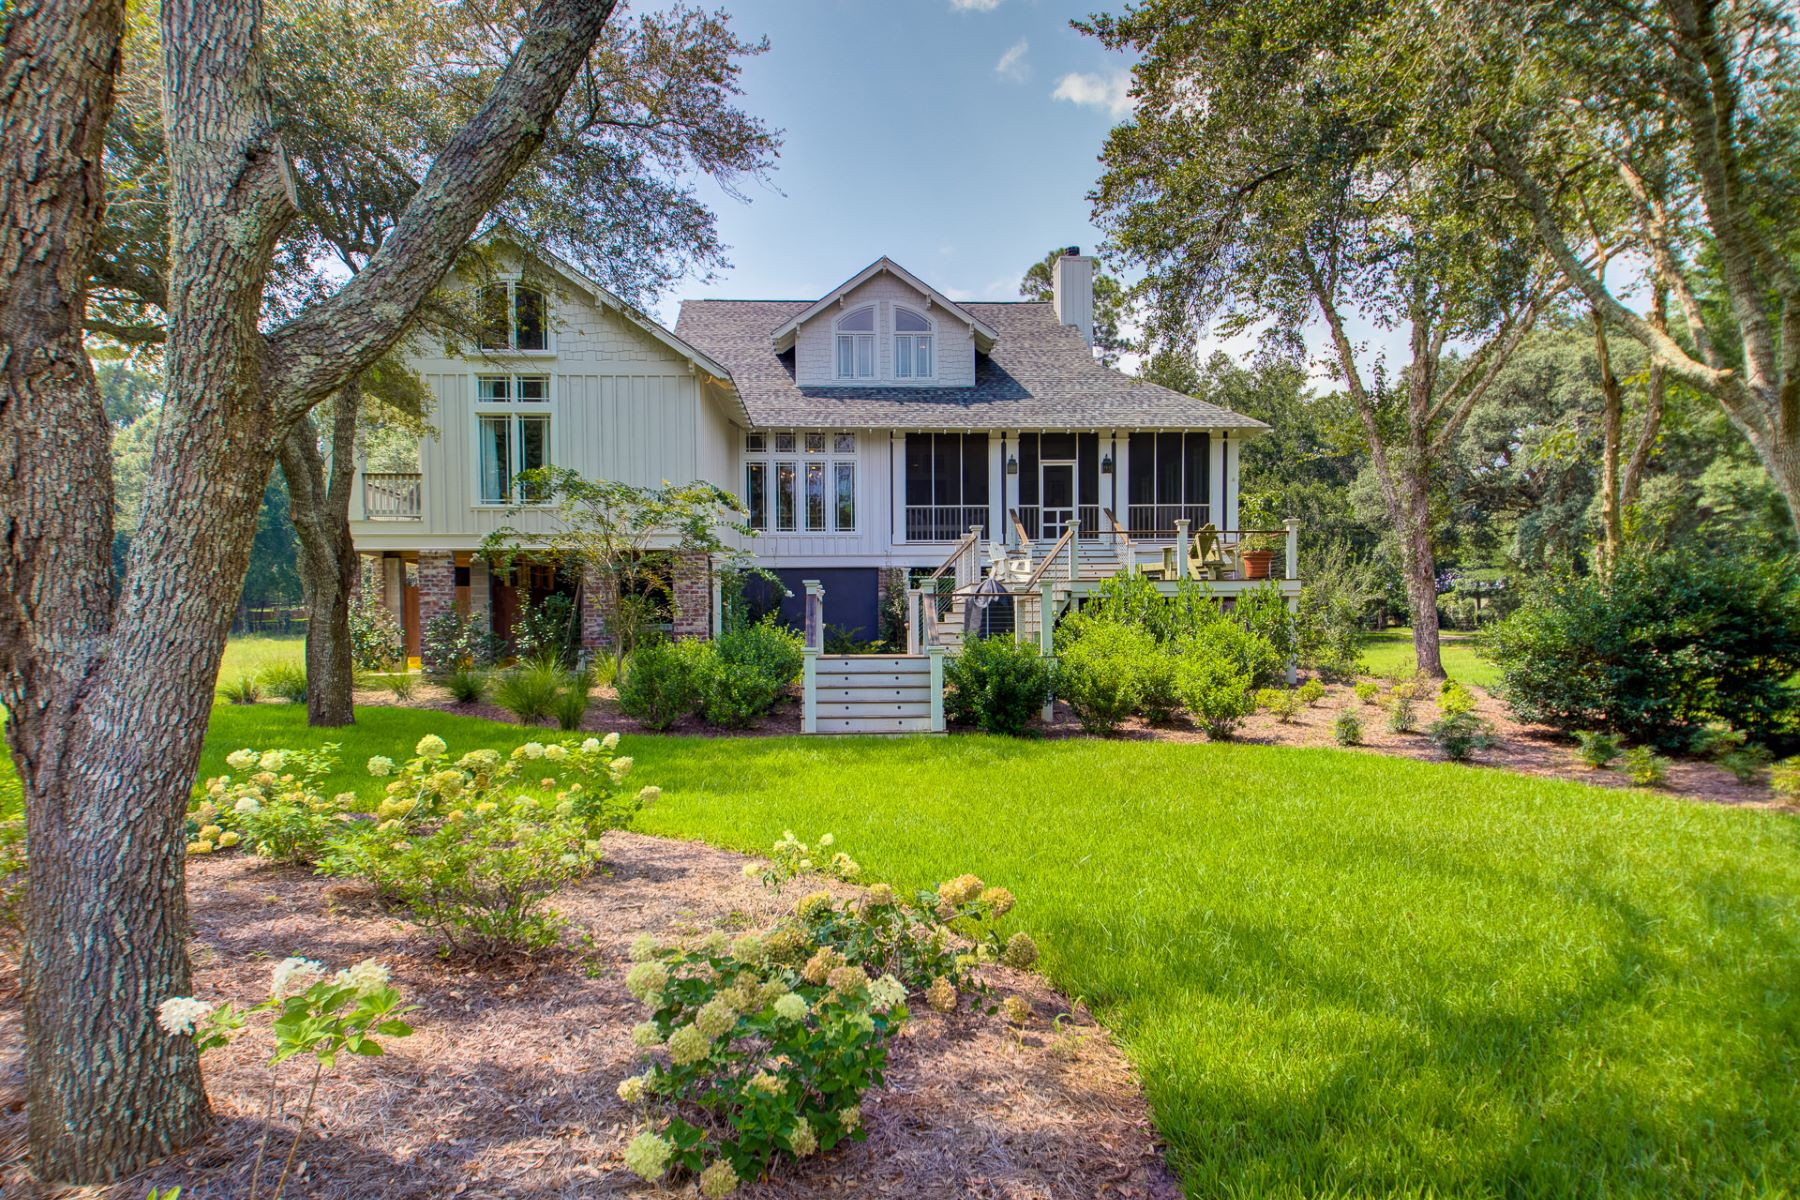 Single Family Home for Active at 16950 River Drive (Fish River) 16950 River Drive Fairhope, Alabama 36532 United States